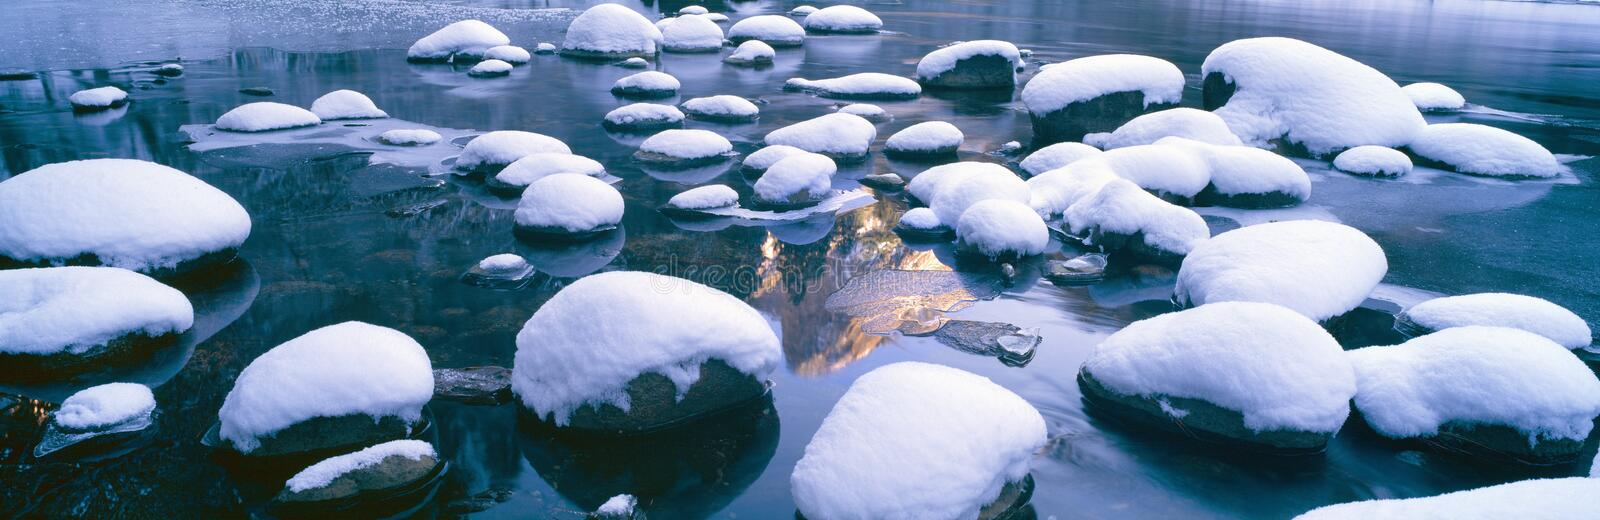 Snowy Merced River with reflection of Half Dome, Yosemite, California royalty free stock photography